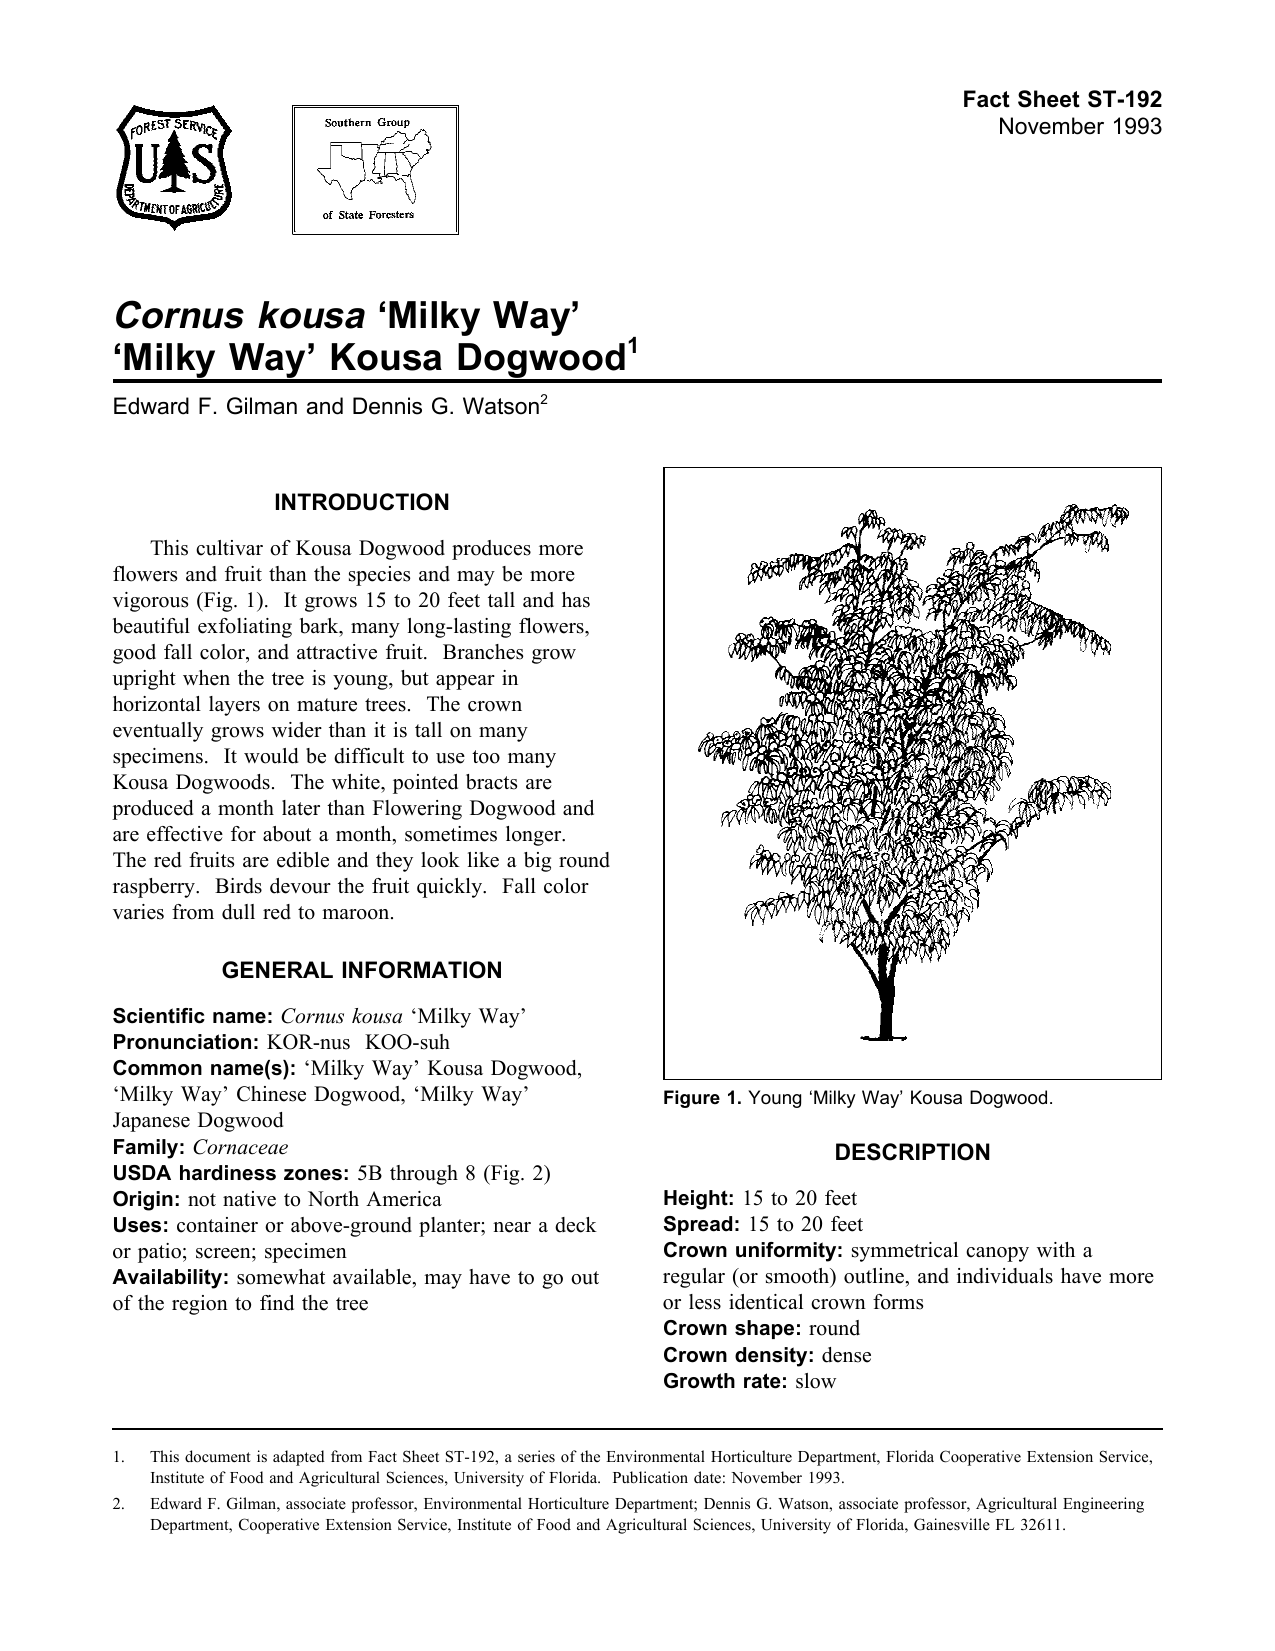 Cornus kousa milky way milky way kousa dogwood fact sheet st 192 1 mightylinksfo